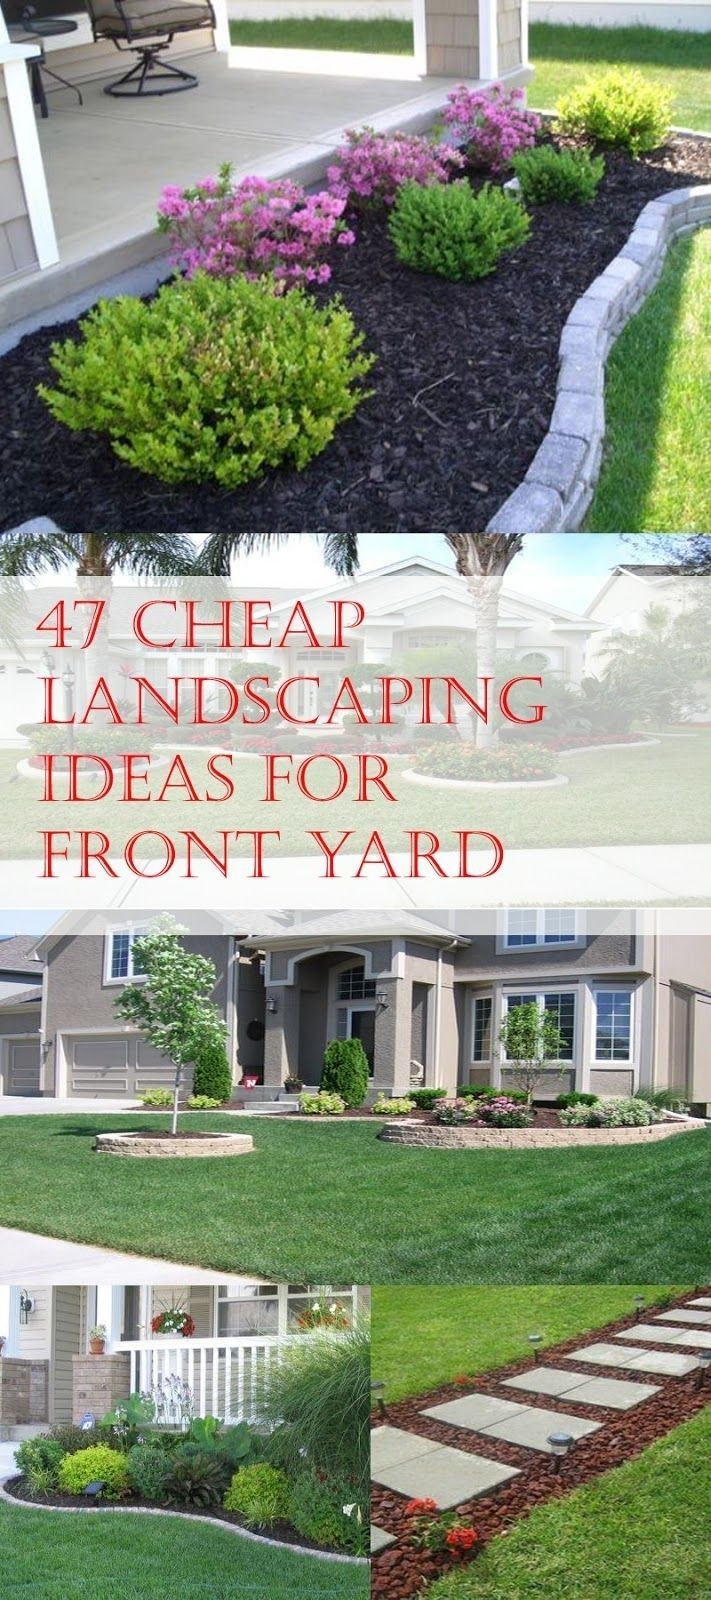 New A Simple Guide To Front Yard Landscaping Ideas On A Budget Cn05as Https C Cheap Landscaping Ideas For Front Yard Cheap Landscaping Ideas Easy Landscaping